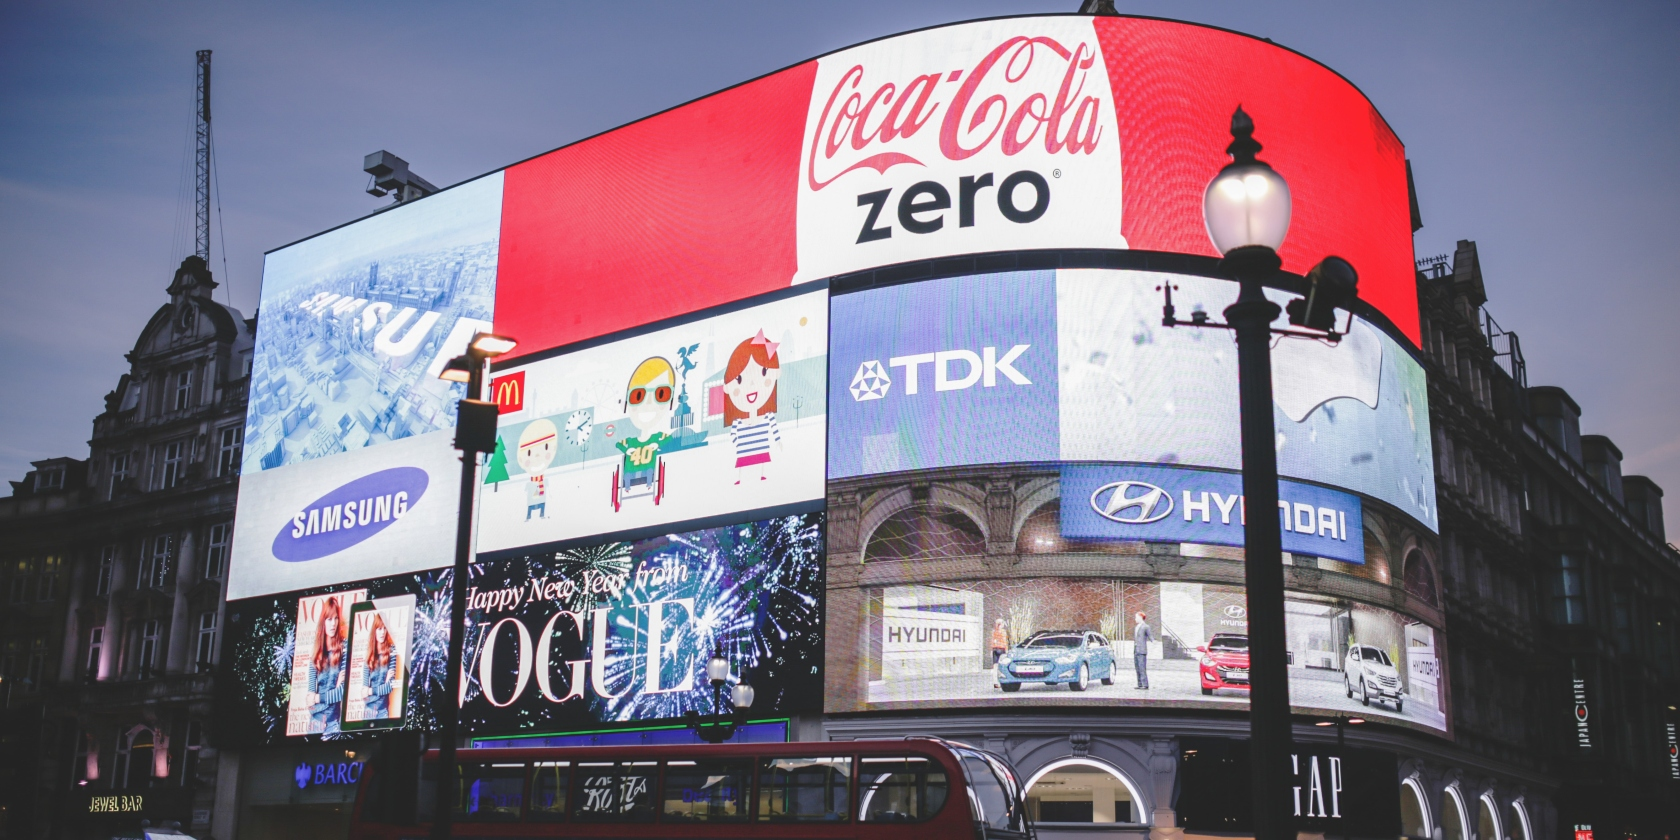 Digital billboards in London showing popular brands such as Coca Cola and TDK.